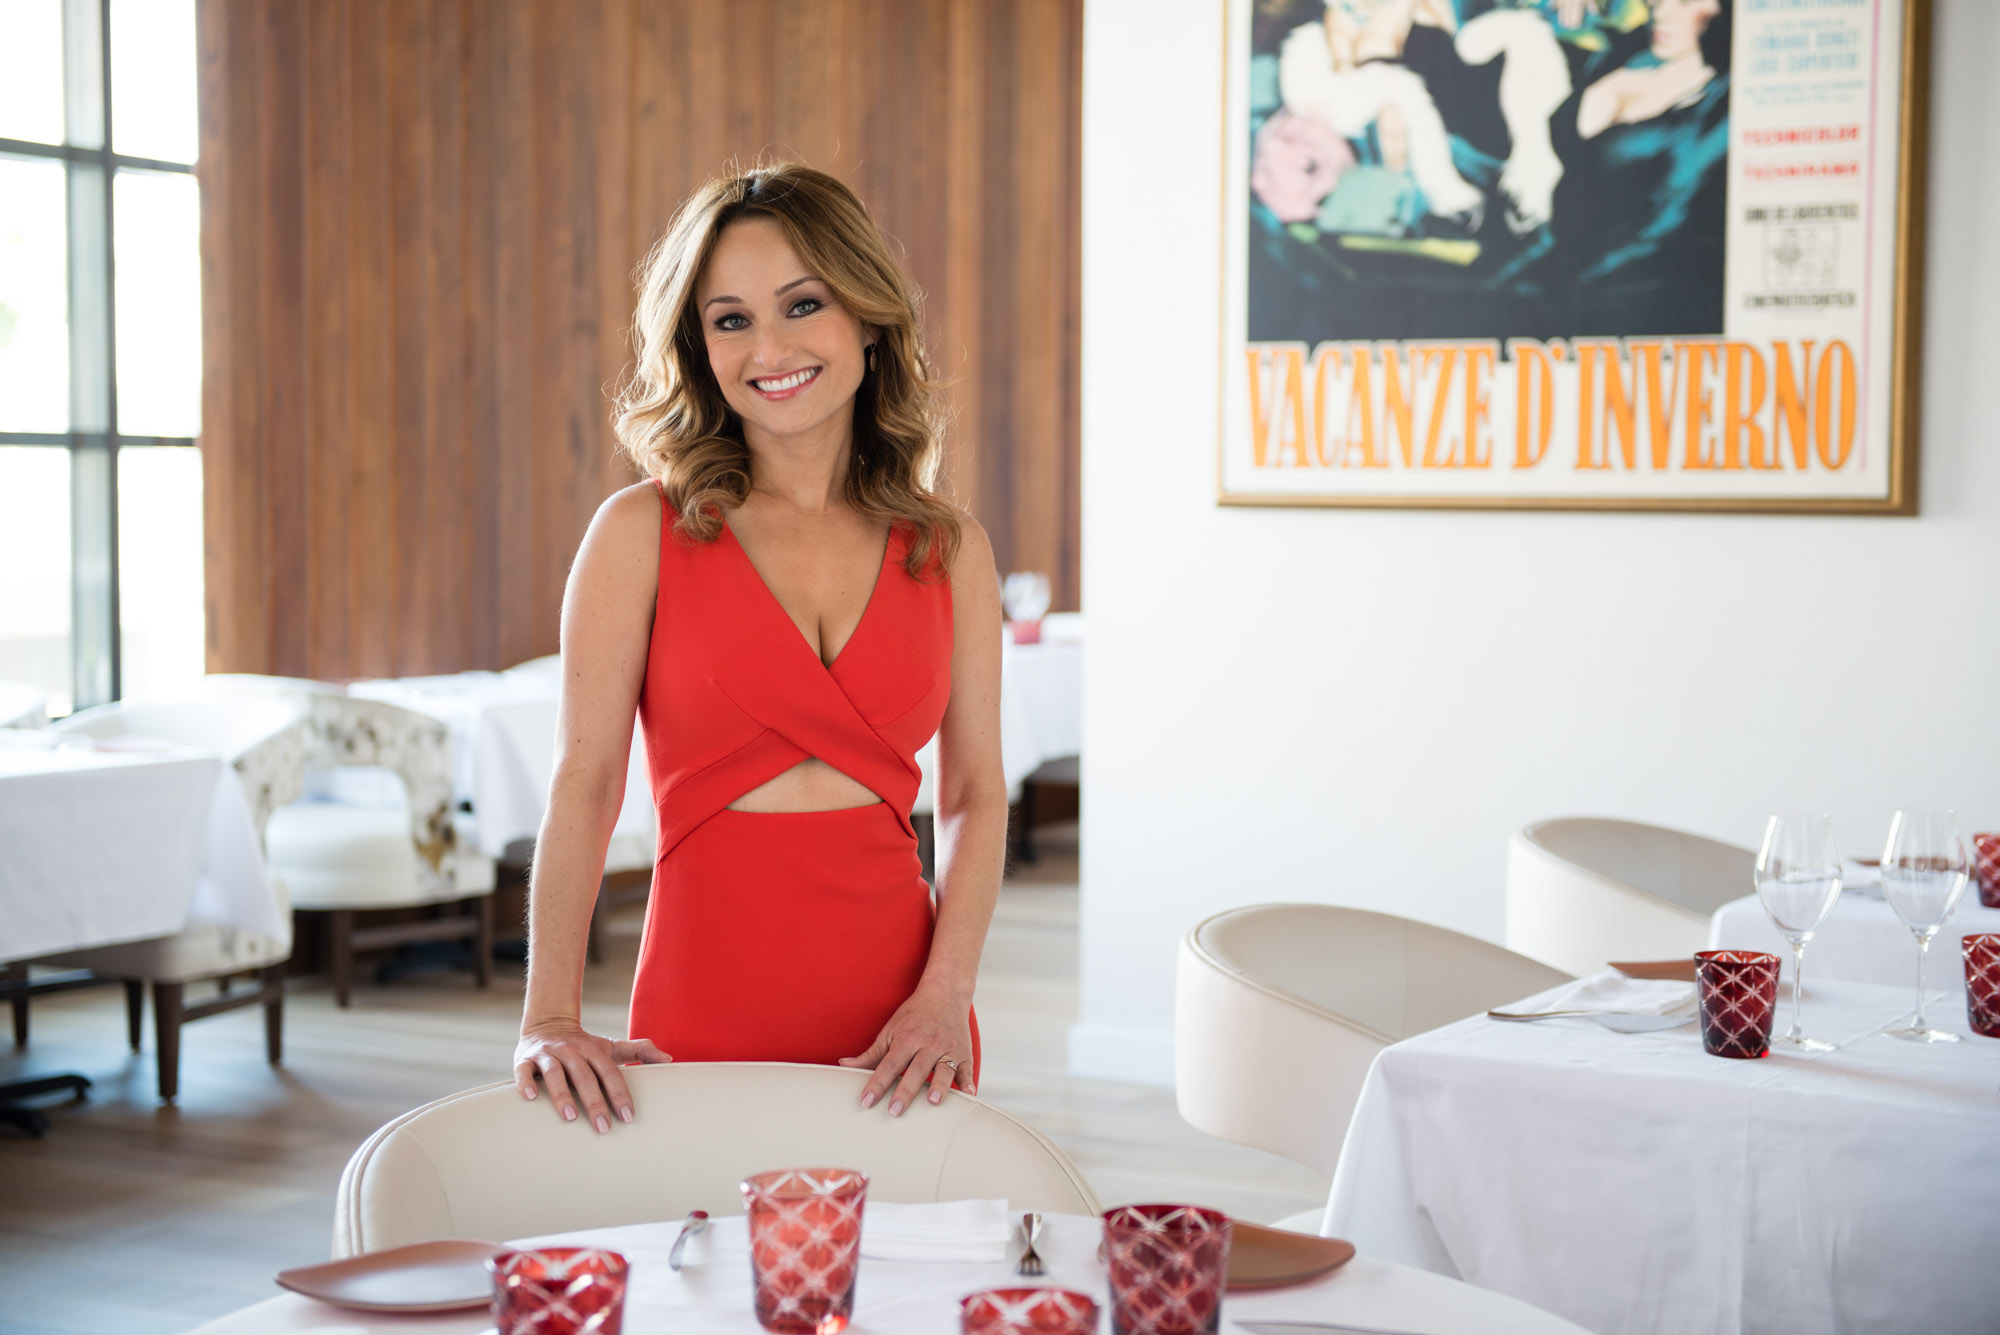 Giada Celebrity Chef Restaurant in Las Vegas